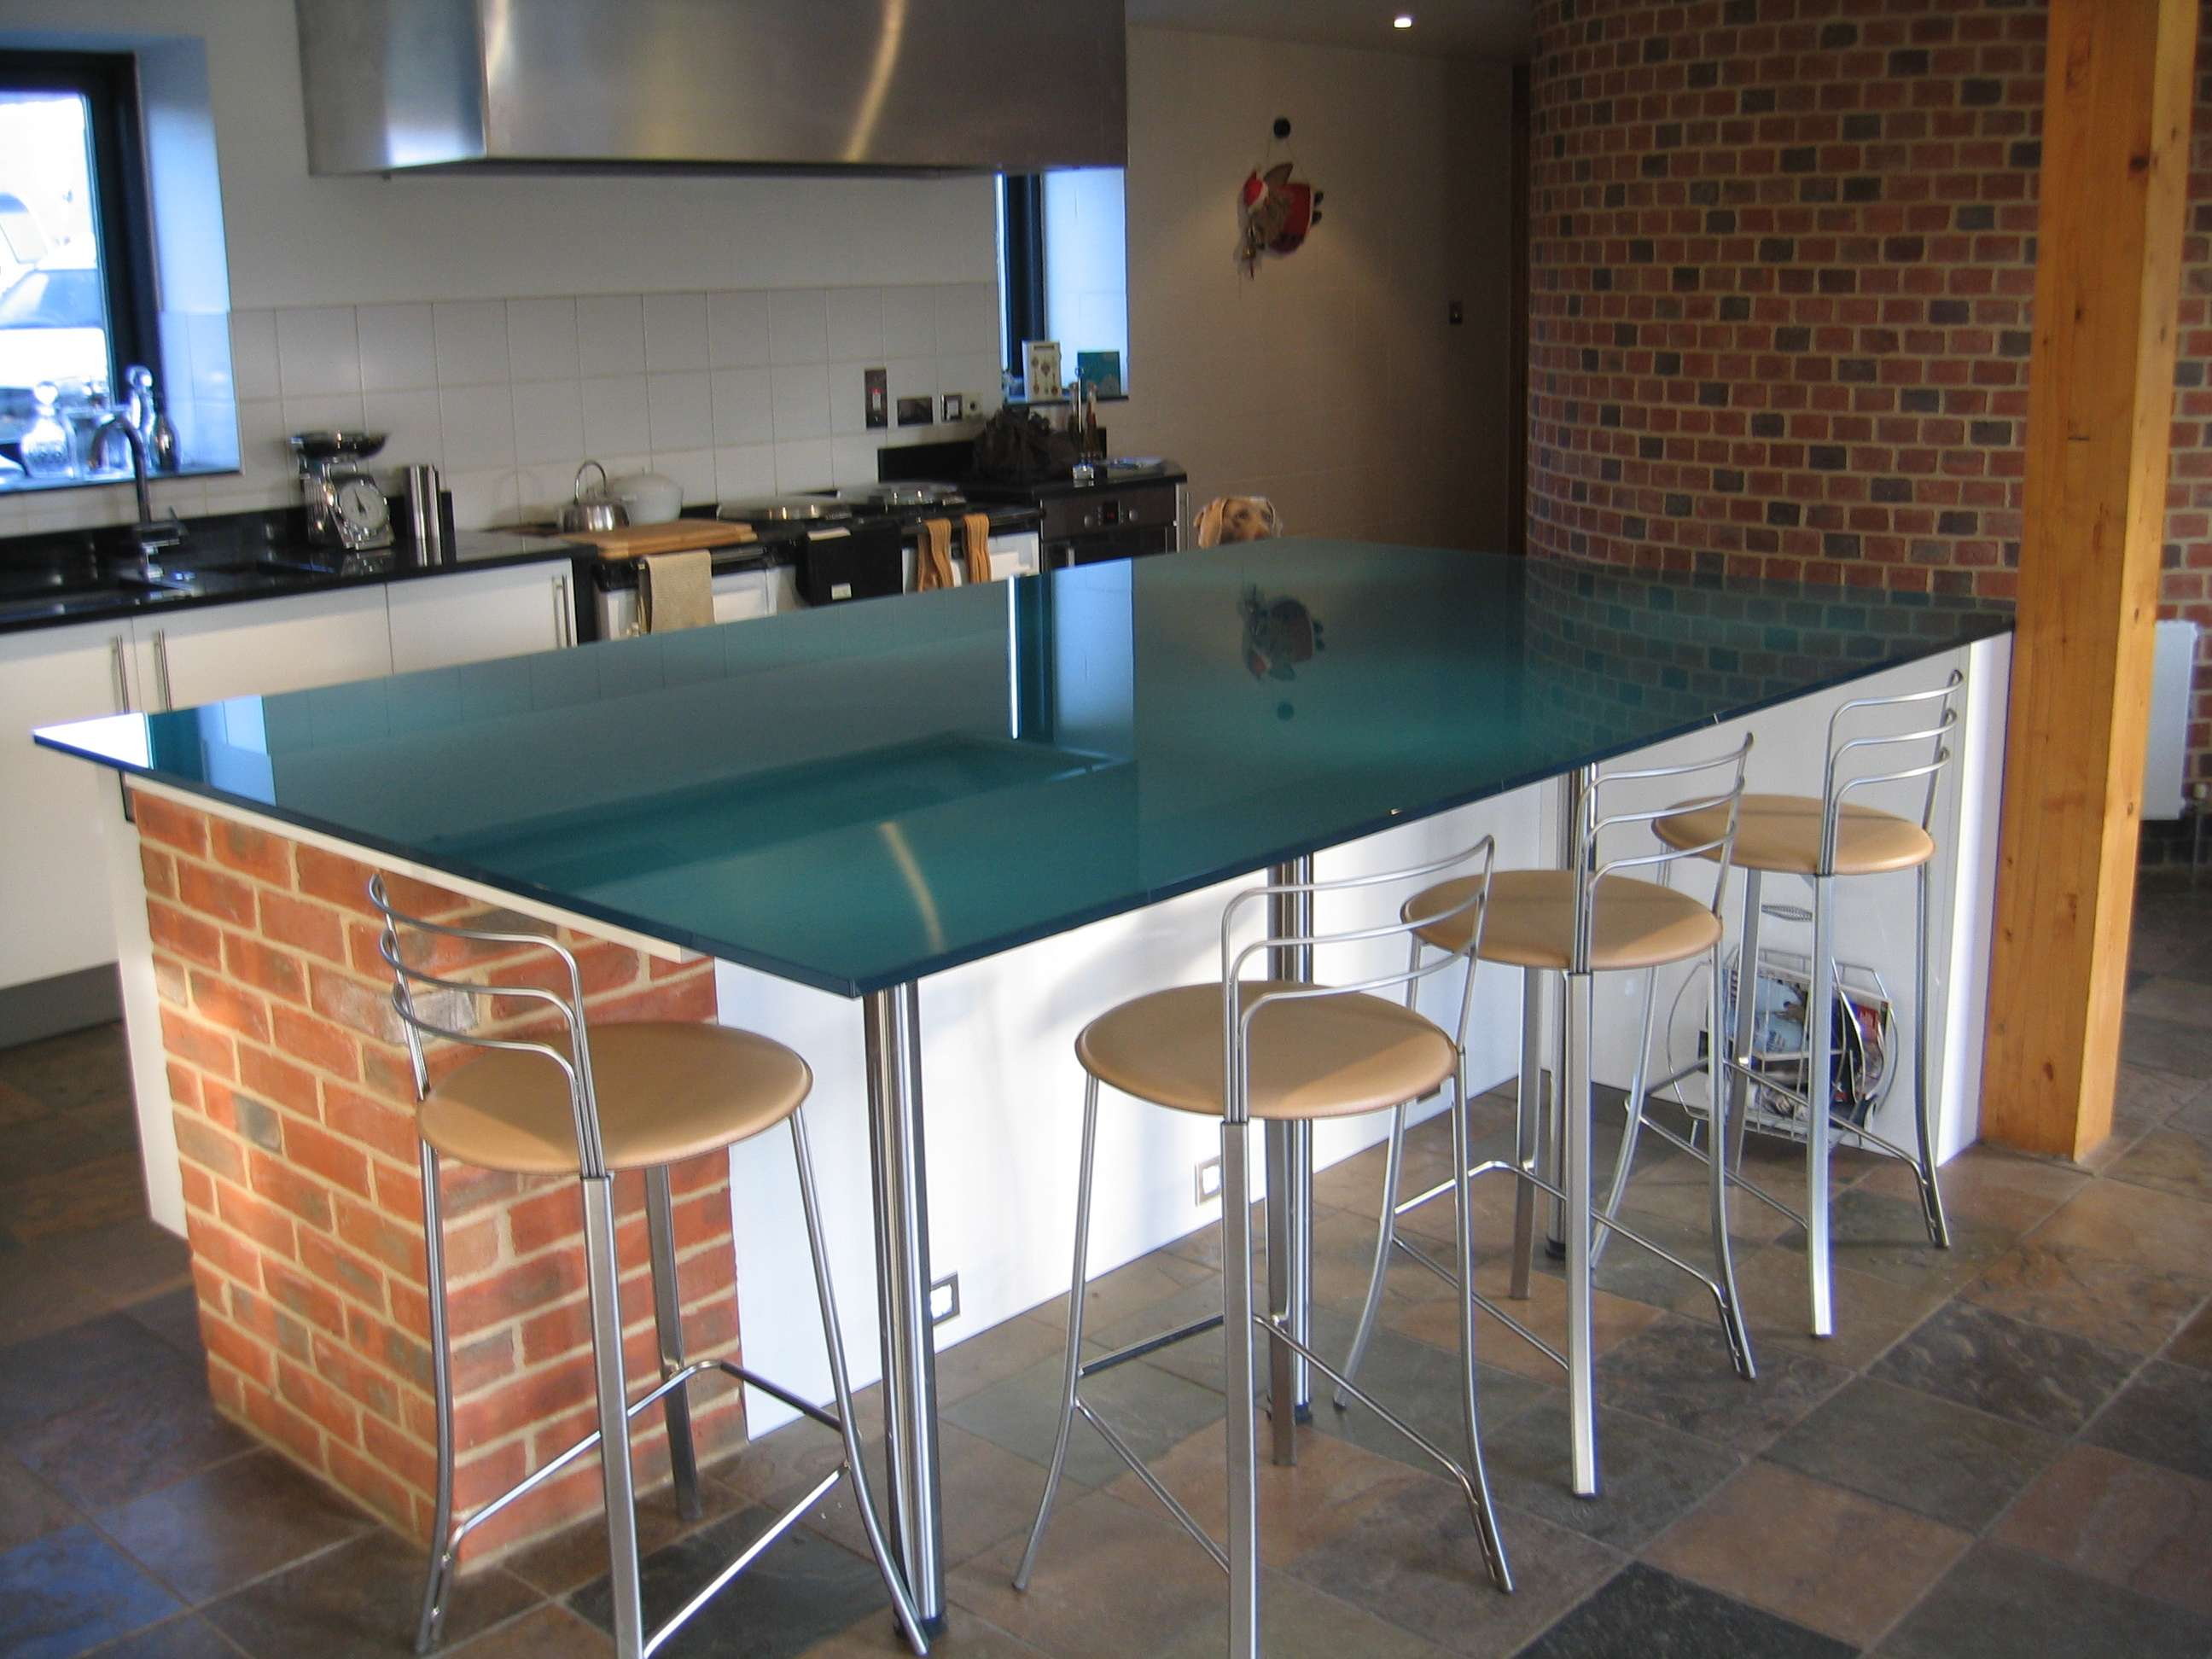 metallic-blue-glass-kitchen-worktop-and-breakfast-bar